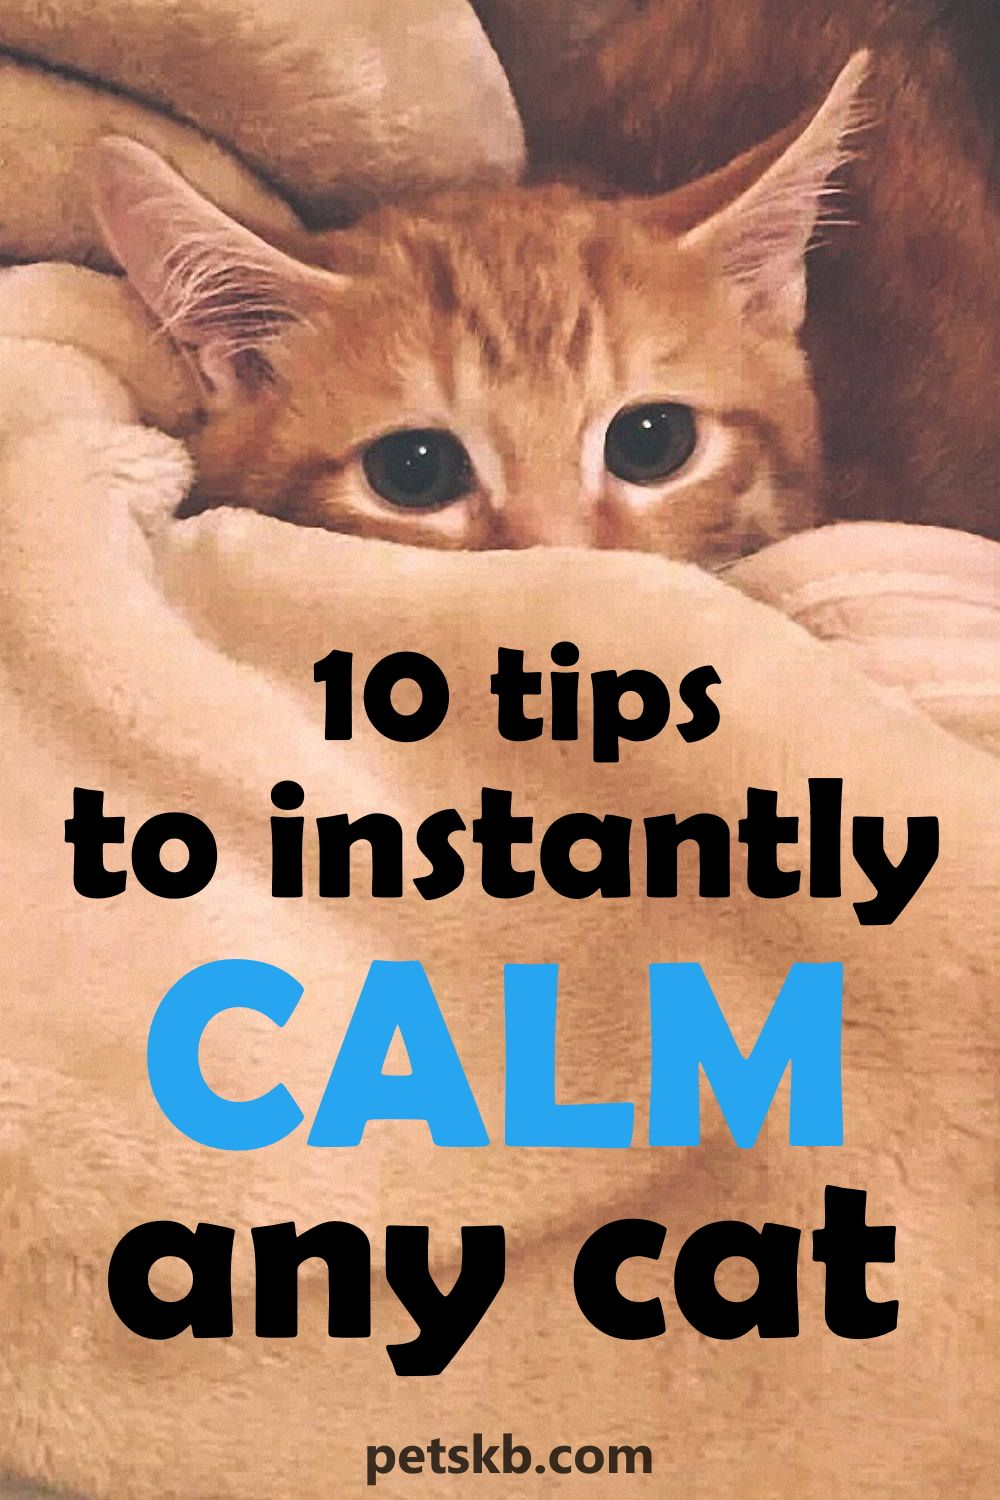 10 Tips To Instantly Calm Any Cat The Pets Kb In 2020 Cat Care Kittens Funny Calming Cat